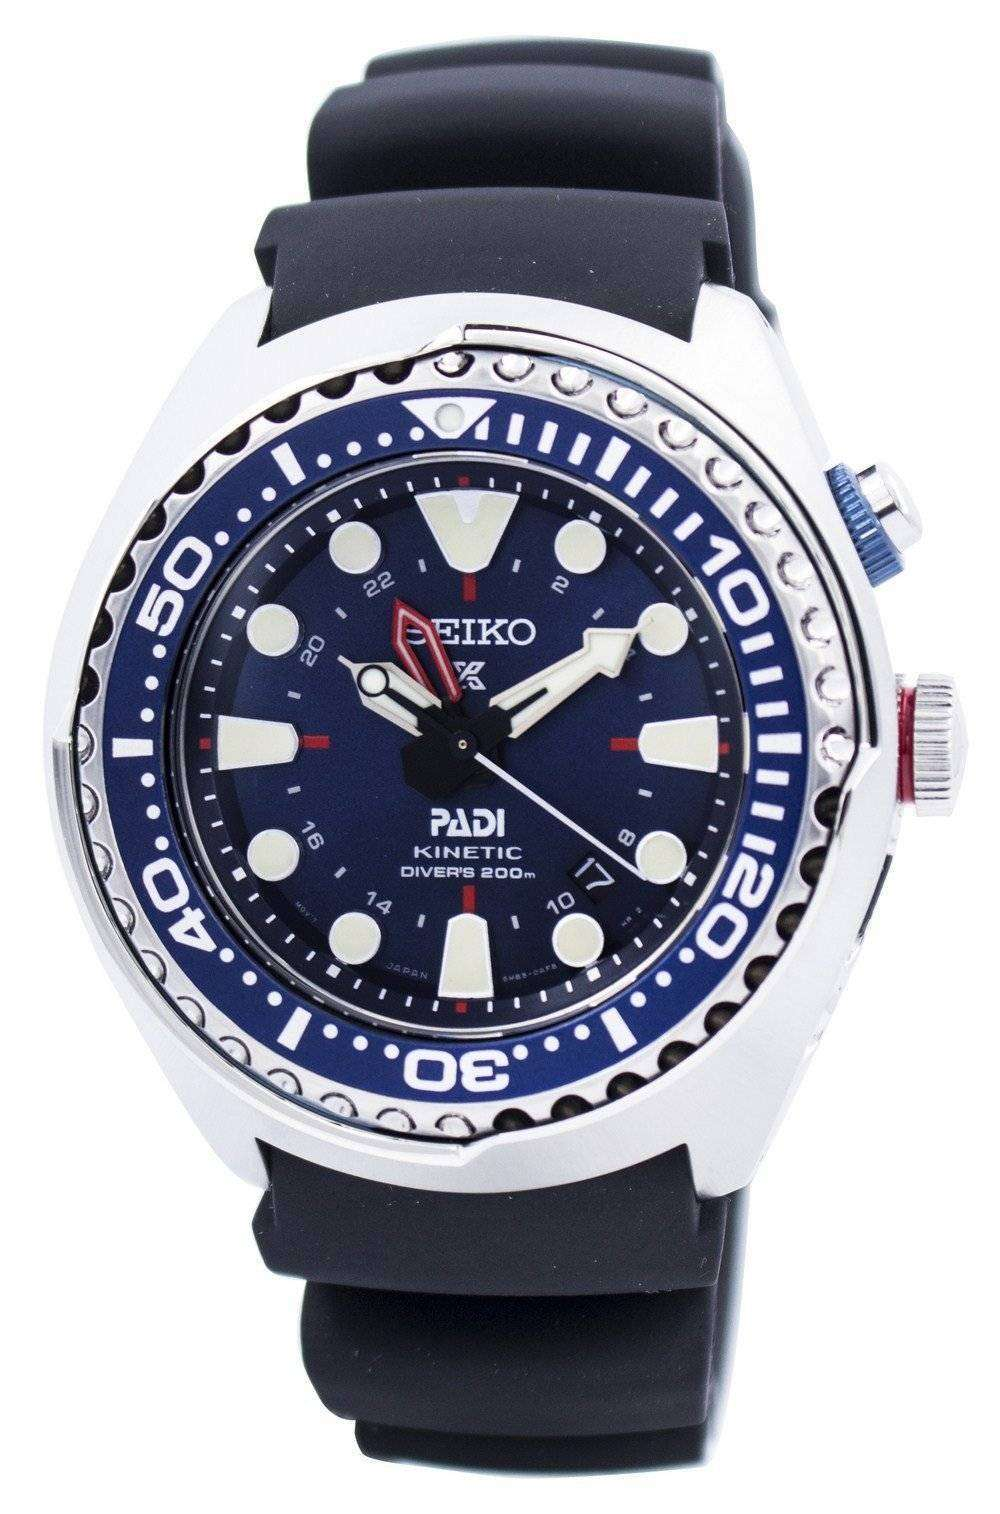 Seiko Prospex Kinetic GMT Diver s